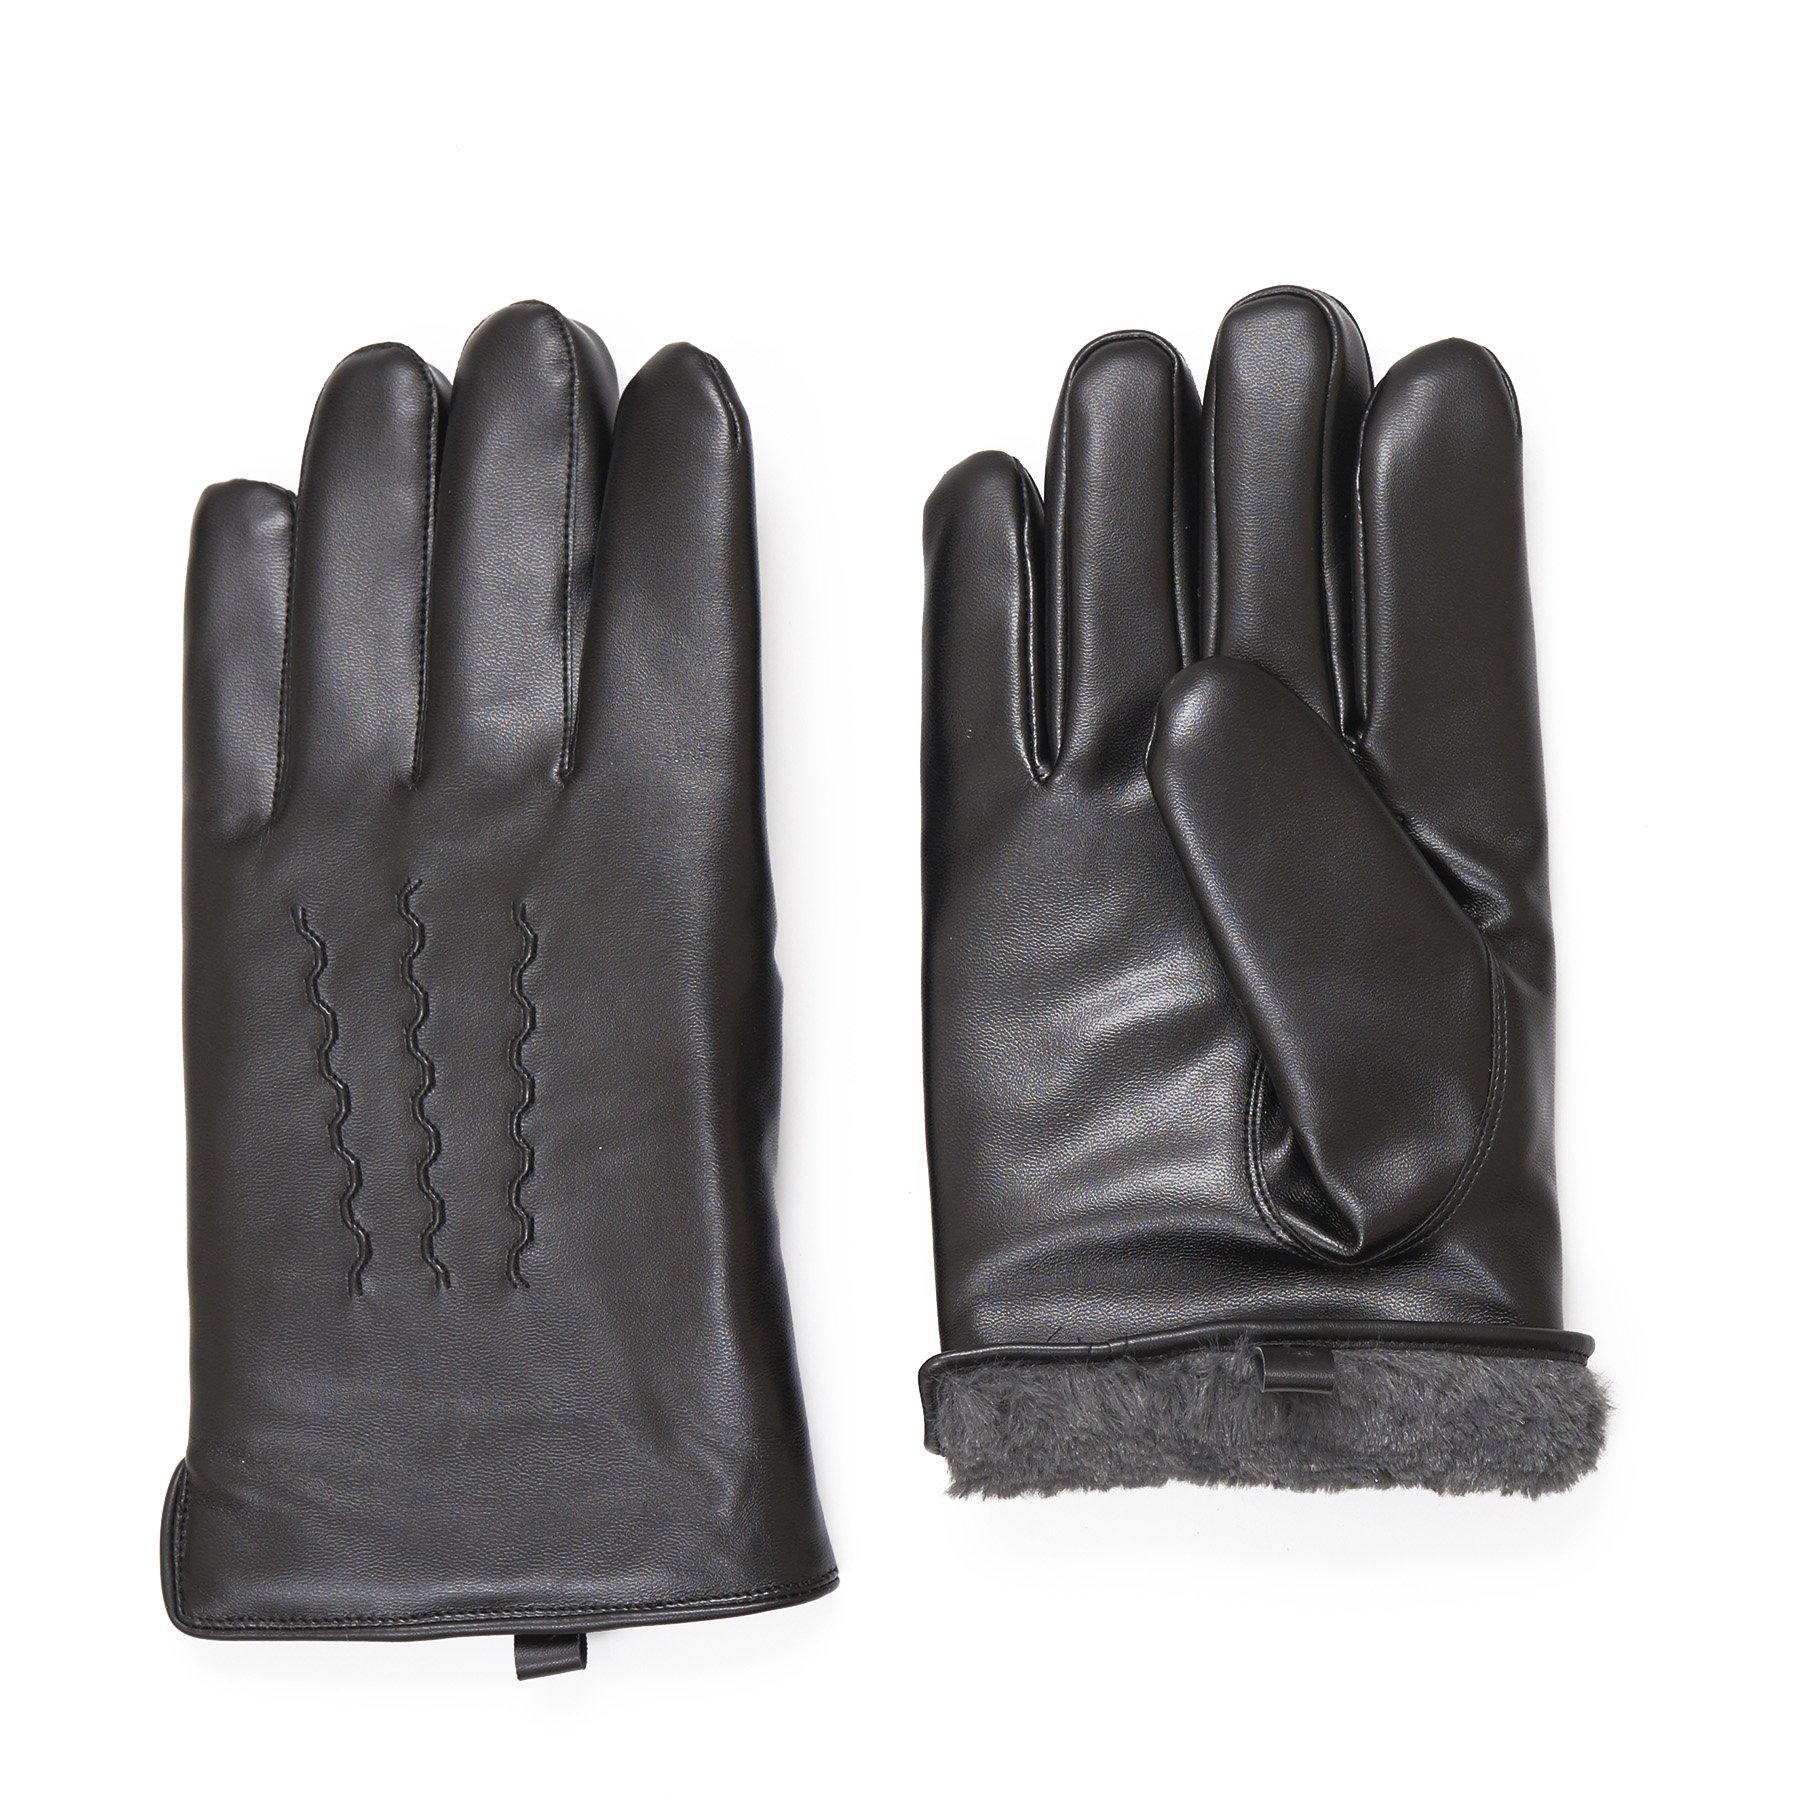 SANREMO Mens Luxury PU Leather Cold Weather Warm Winter Gloves (Fake Fur Lining)-X-Large